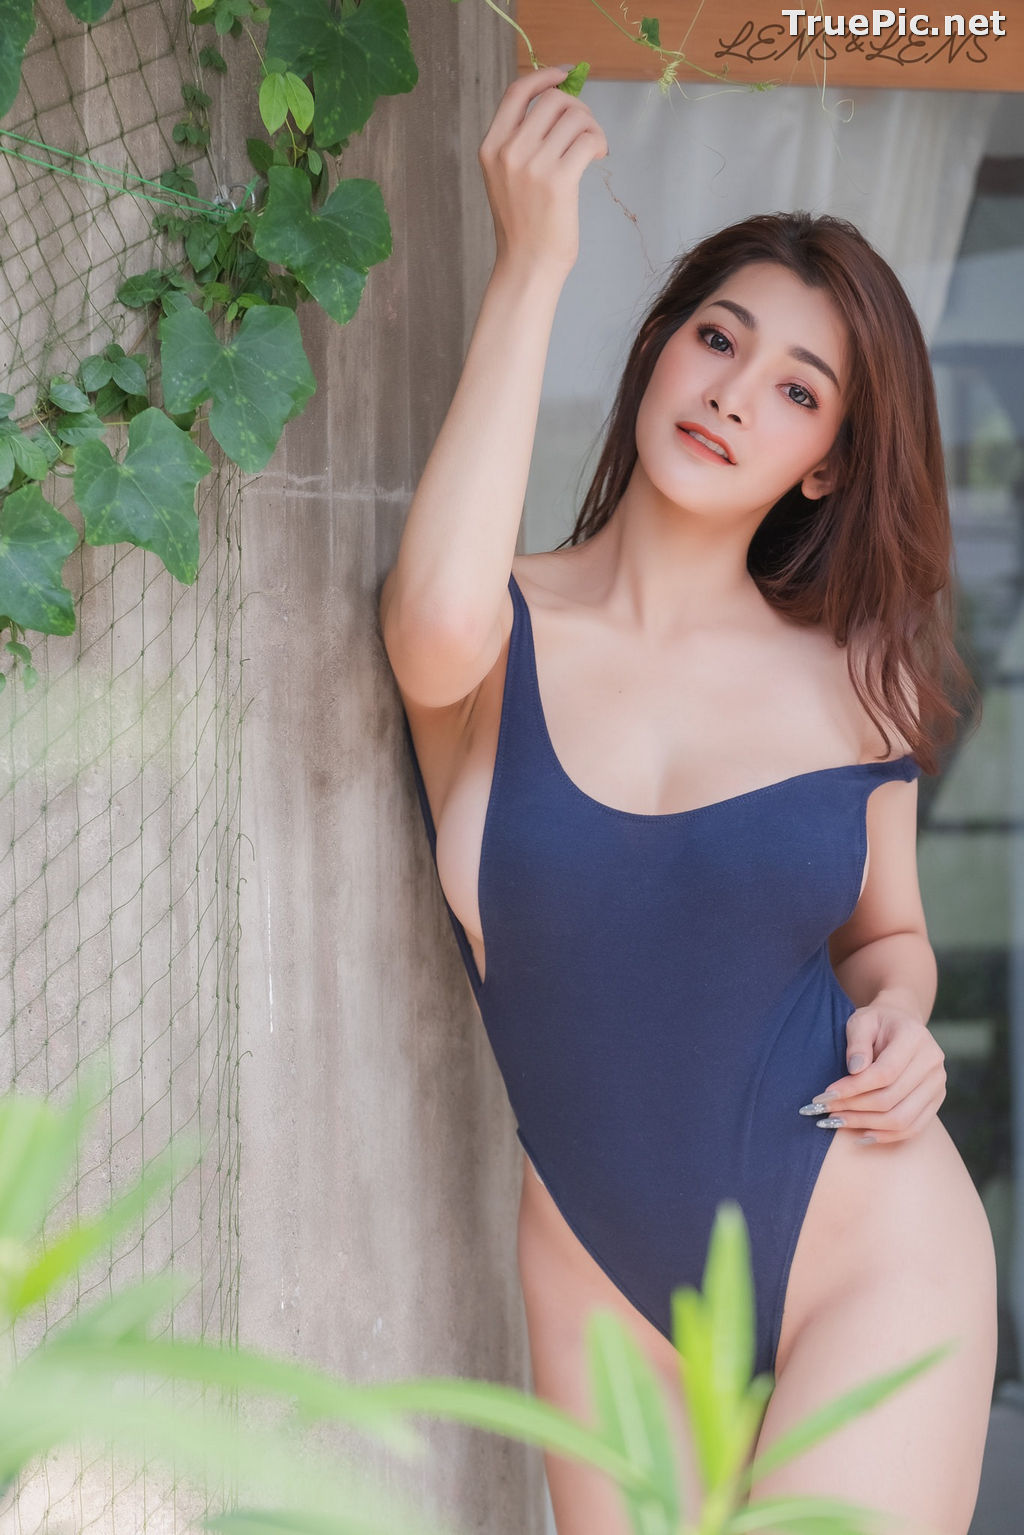 Image Thailand Model - Porntapawee Sripreserth - Concept Sexy One Piece - TruePic.net - Picture-4